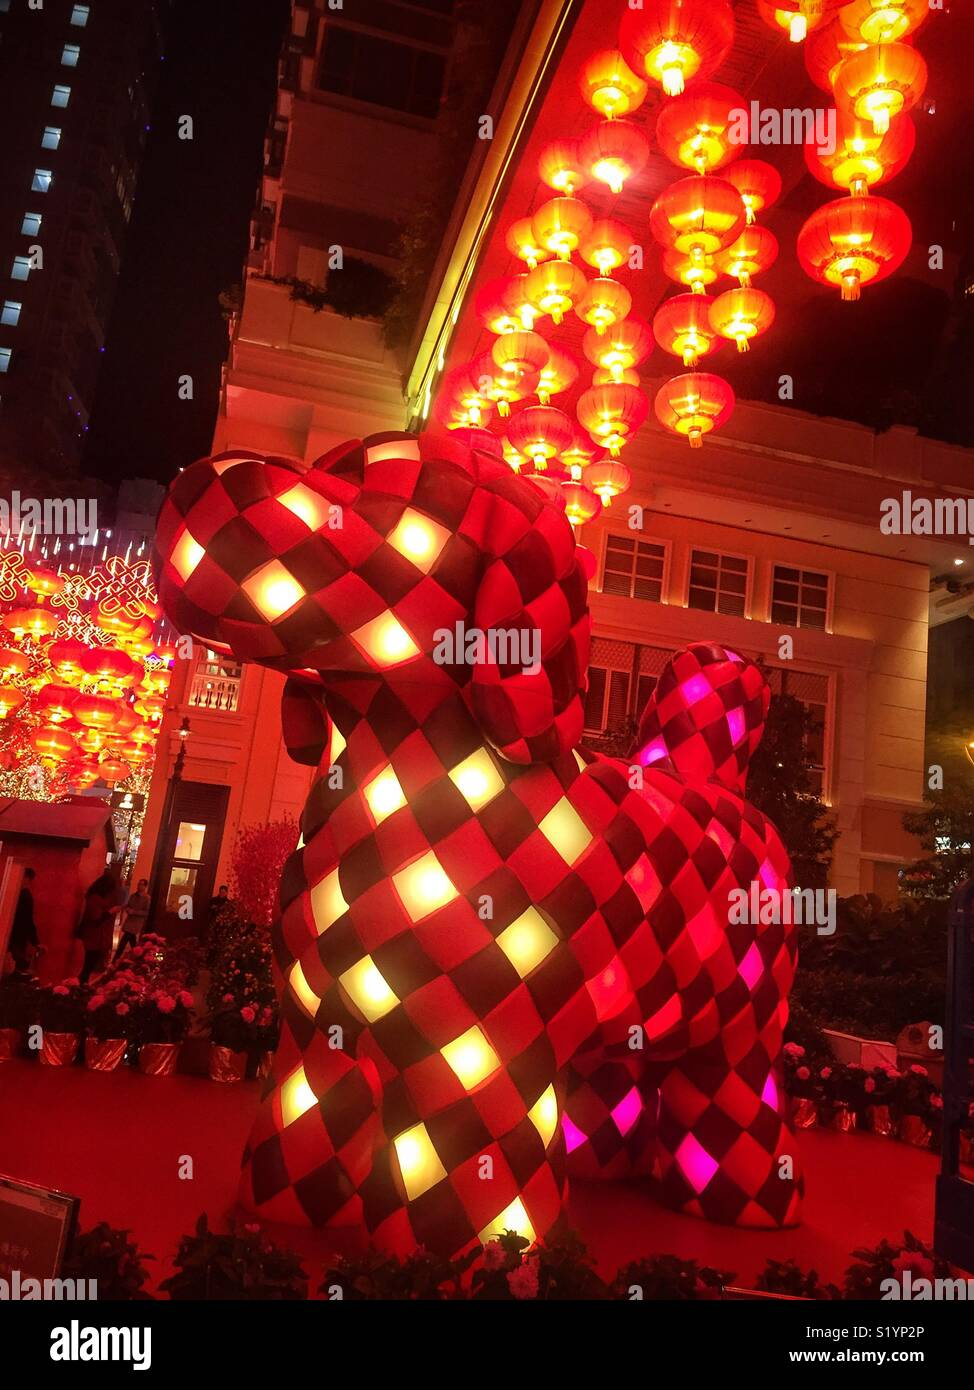 'Fortune Knot Doggie', a 4-meter sculpture by Kavan Lau installed at Lee Tung Avenue, Wan Chai, Hong Kong Island for the Chinese New Year of the Dog in 2018, emulates traditional weaving technique - Stock Image